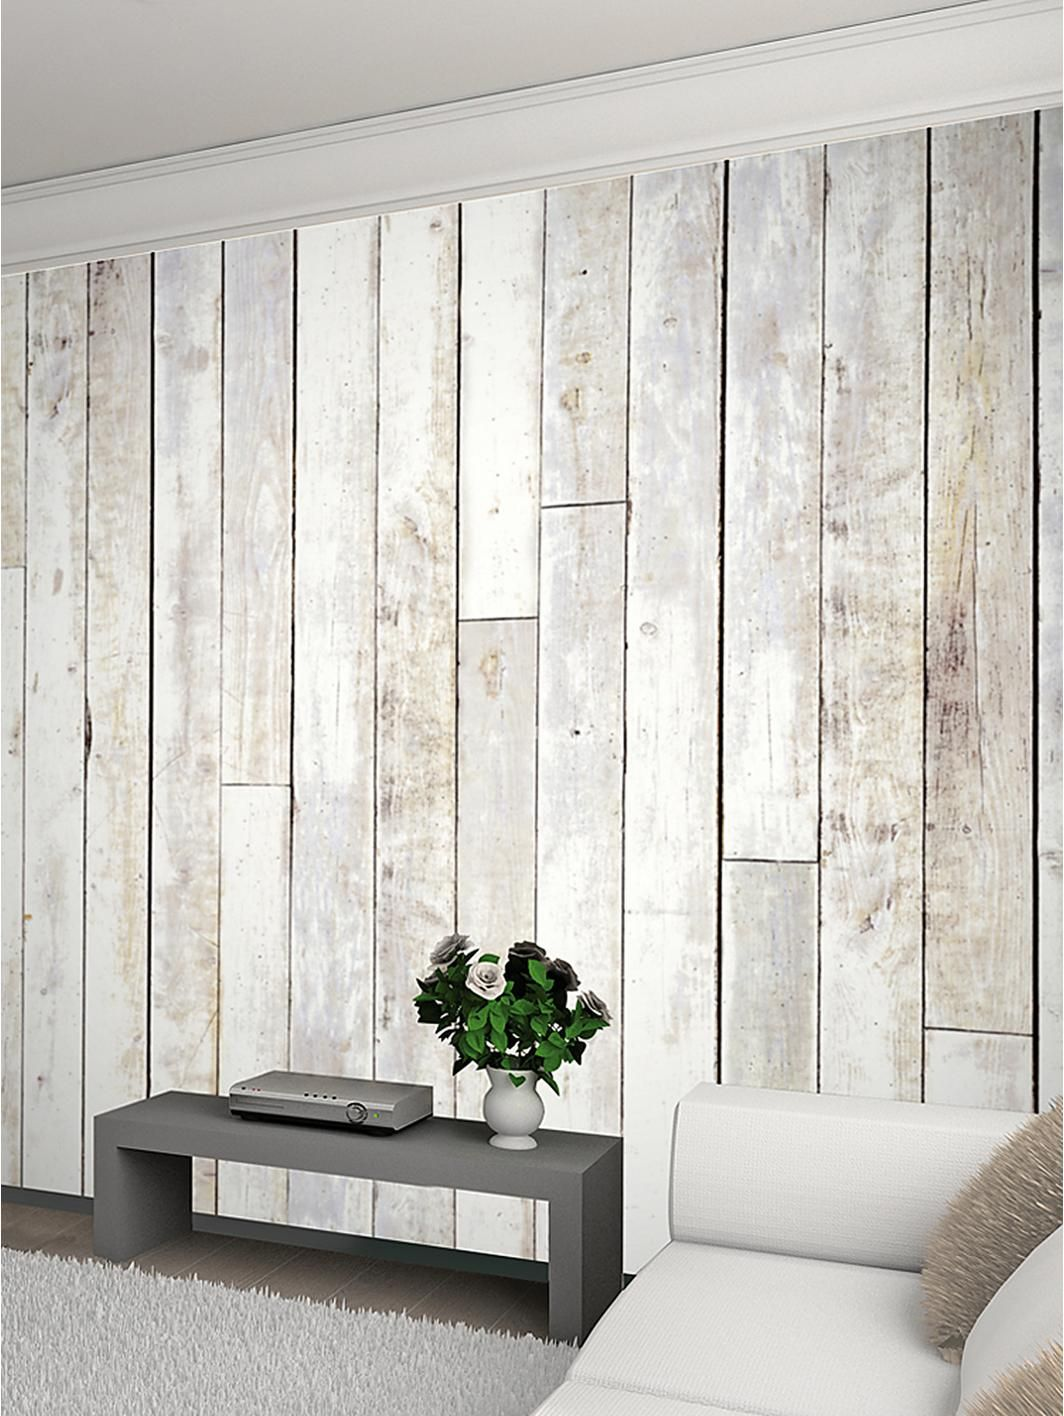 Whitewash Wood Panel Wall Mural, http://www.very.co. - Whitewash Wood Panel Wall Mural, Http://www.very.co.uk/1wall